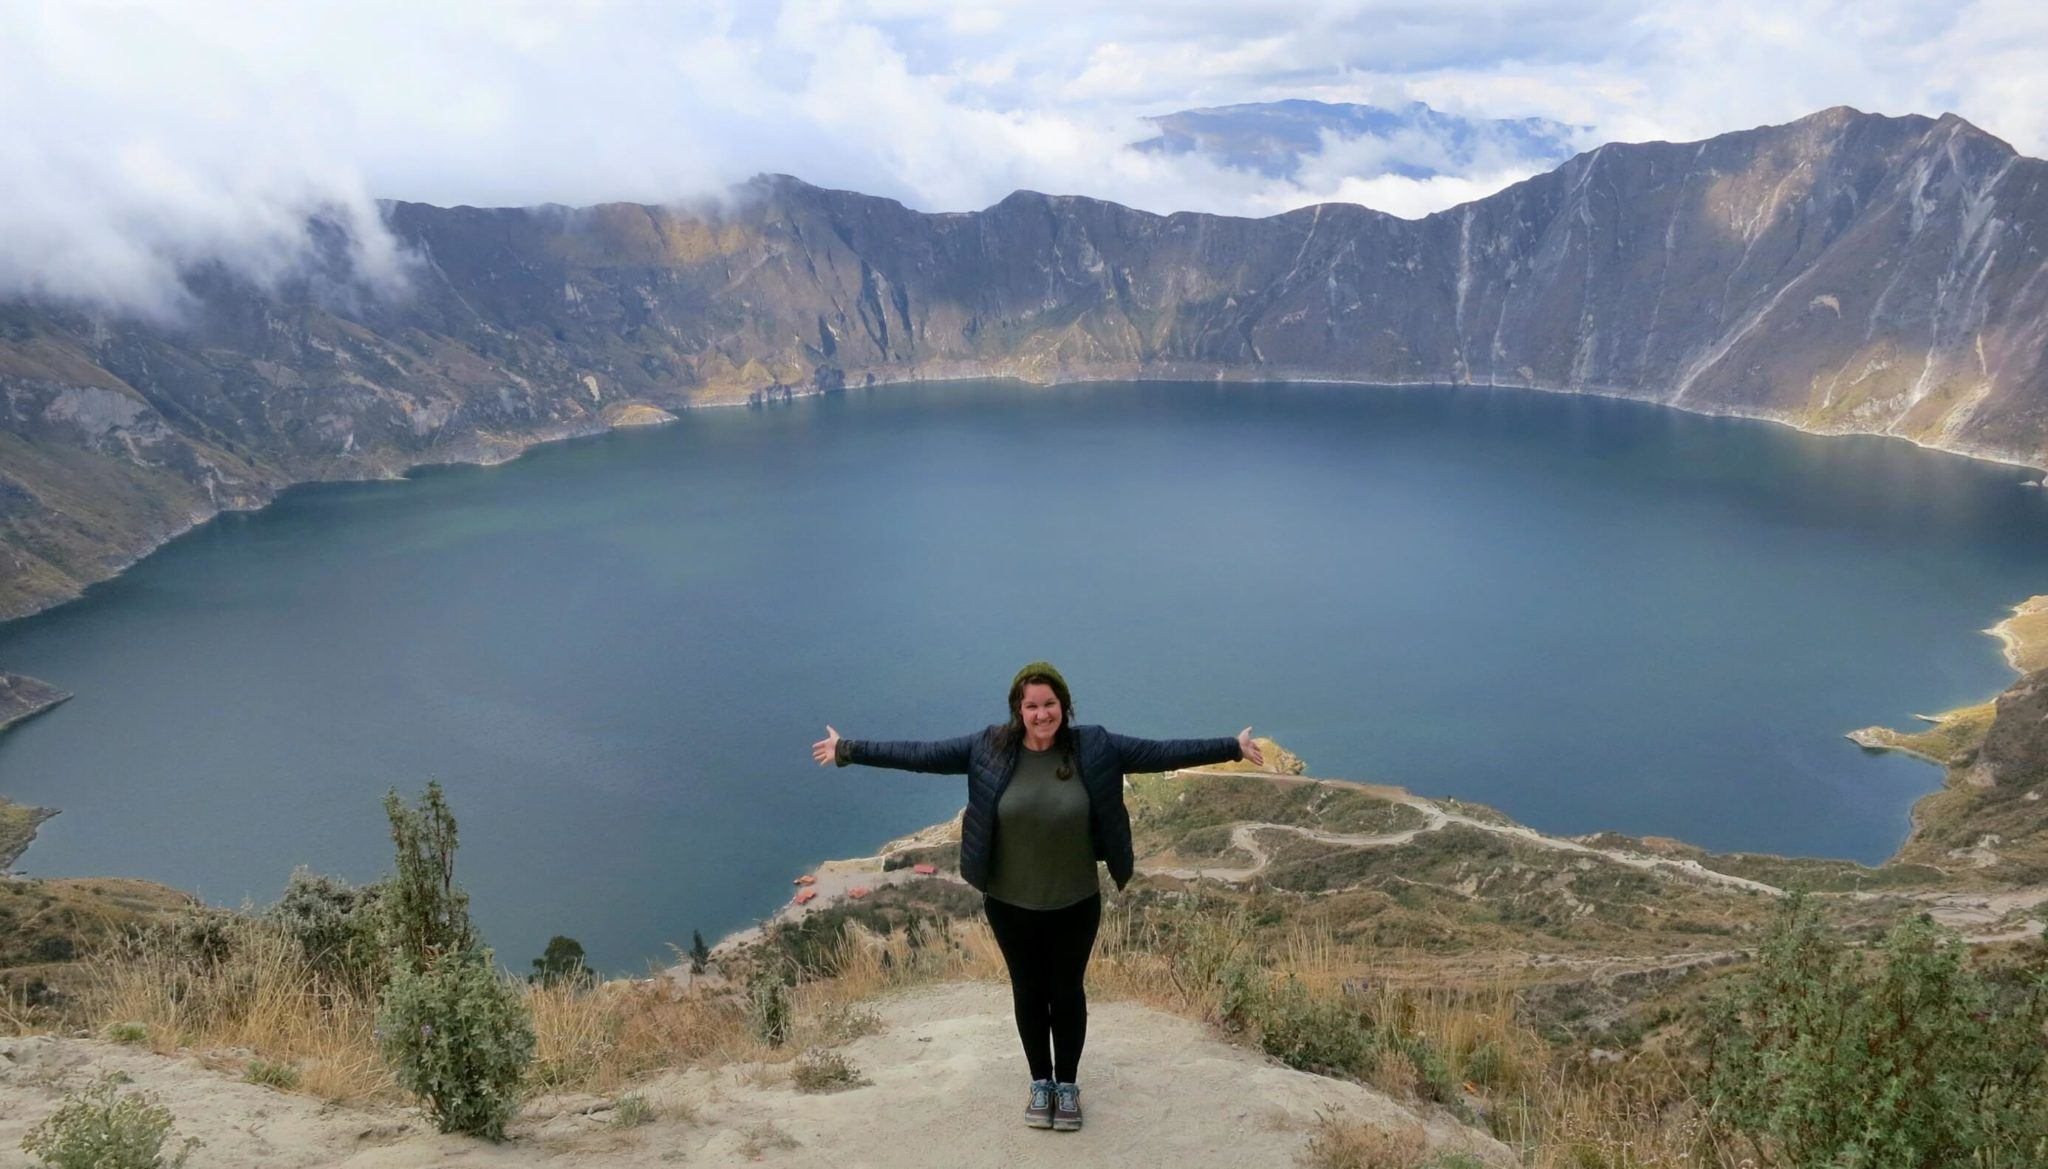 The view from the crater at Quilotoa Lake, on the Quilotoa Loop, Ecuador